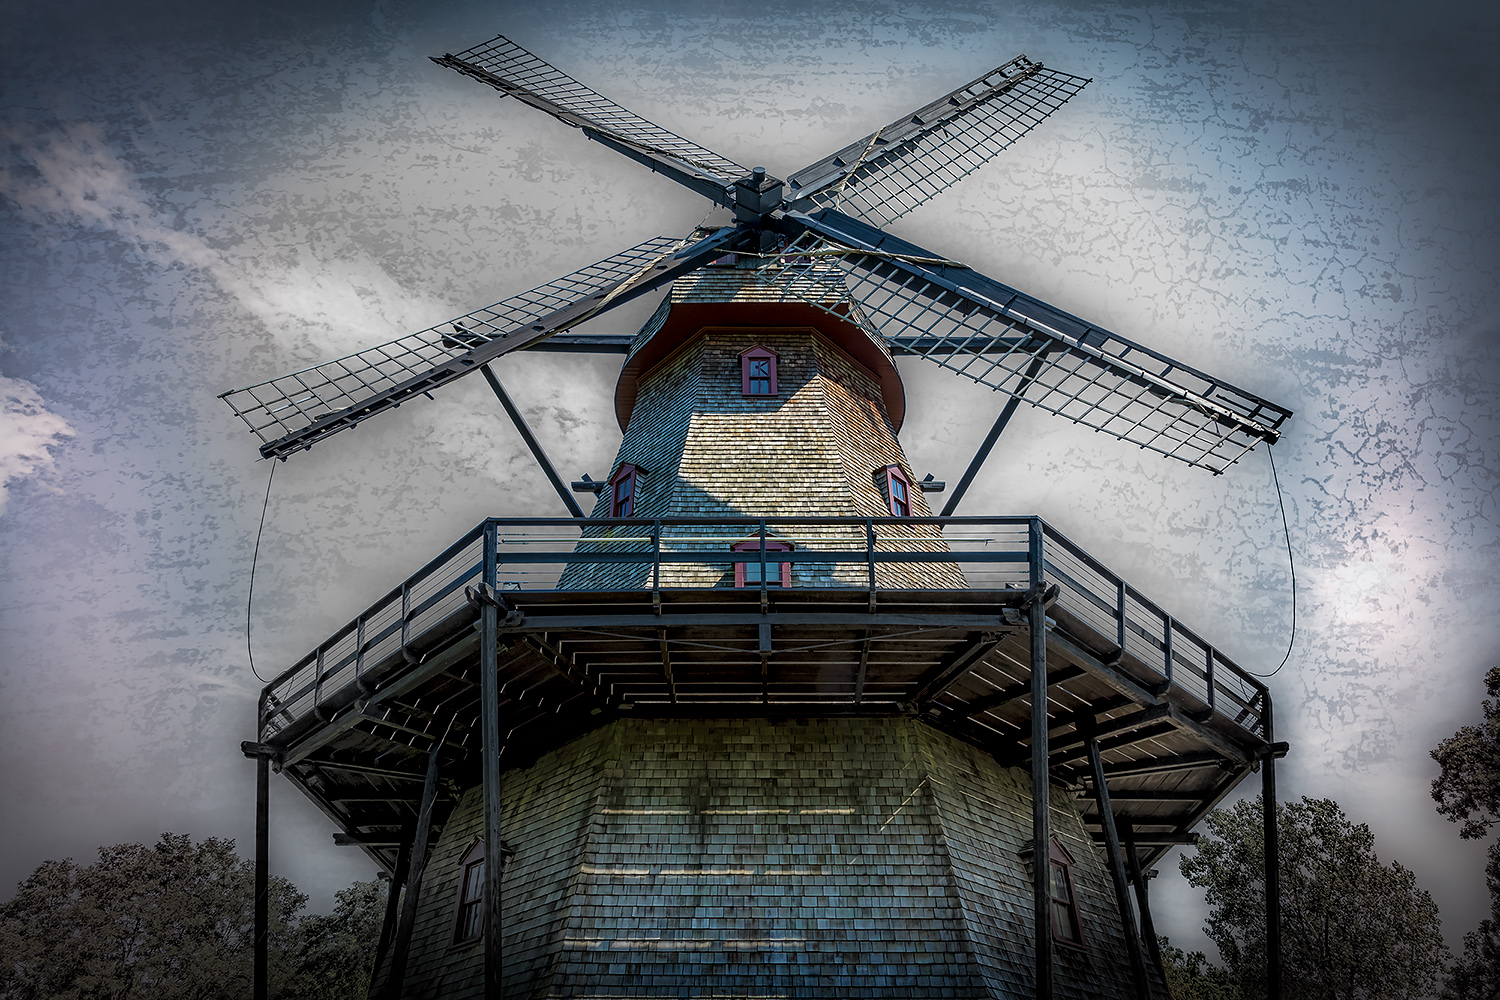 Old Fabyan Dutch Mill with interesting persective and texture treatment.